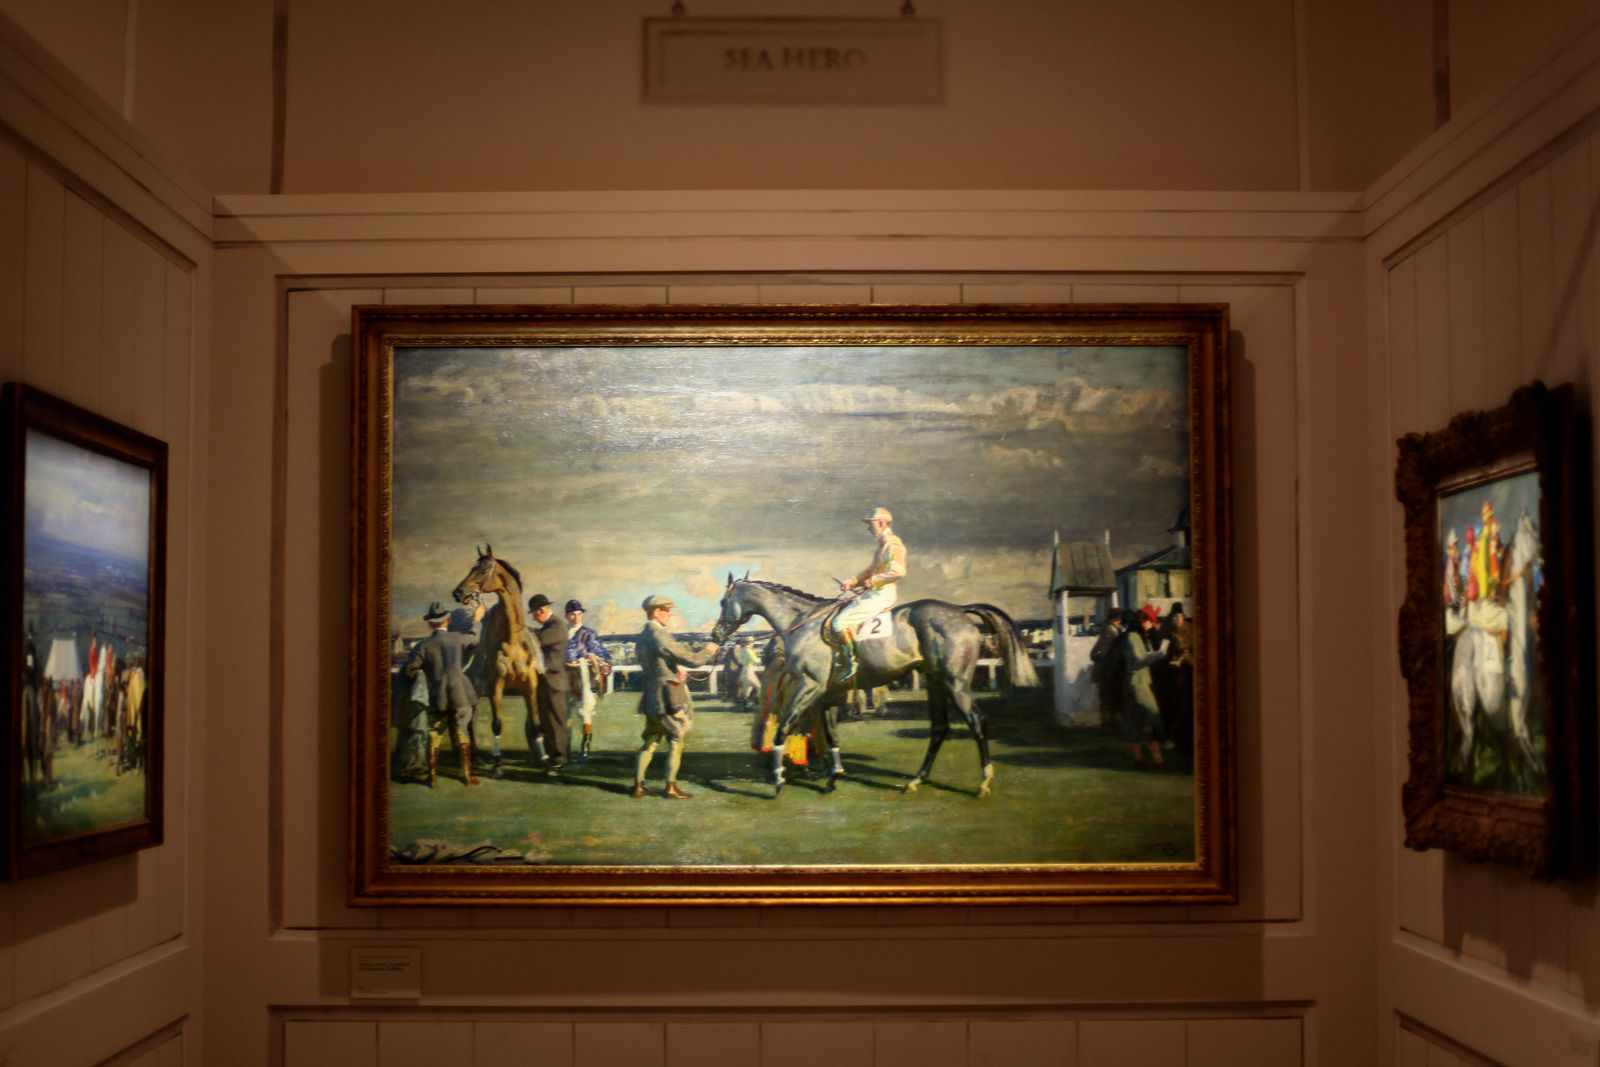 """Après la course, le paddock à Cheltenham Saddling"", 1946 de Sir Alfred  MUNNINGS  - Courtesy The Paul Mellon Collection, Virginia Museum of Fine Arts © Photo Éric Simon"